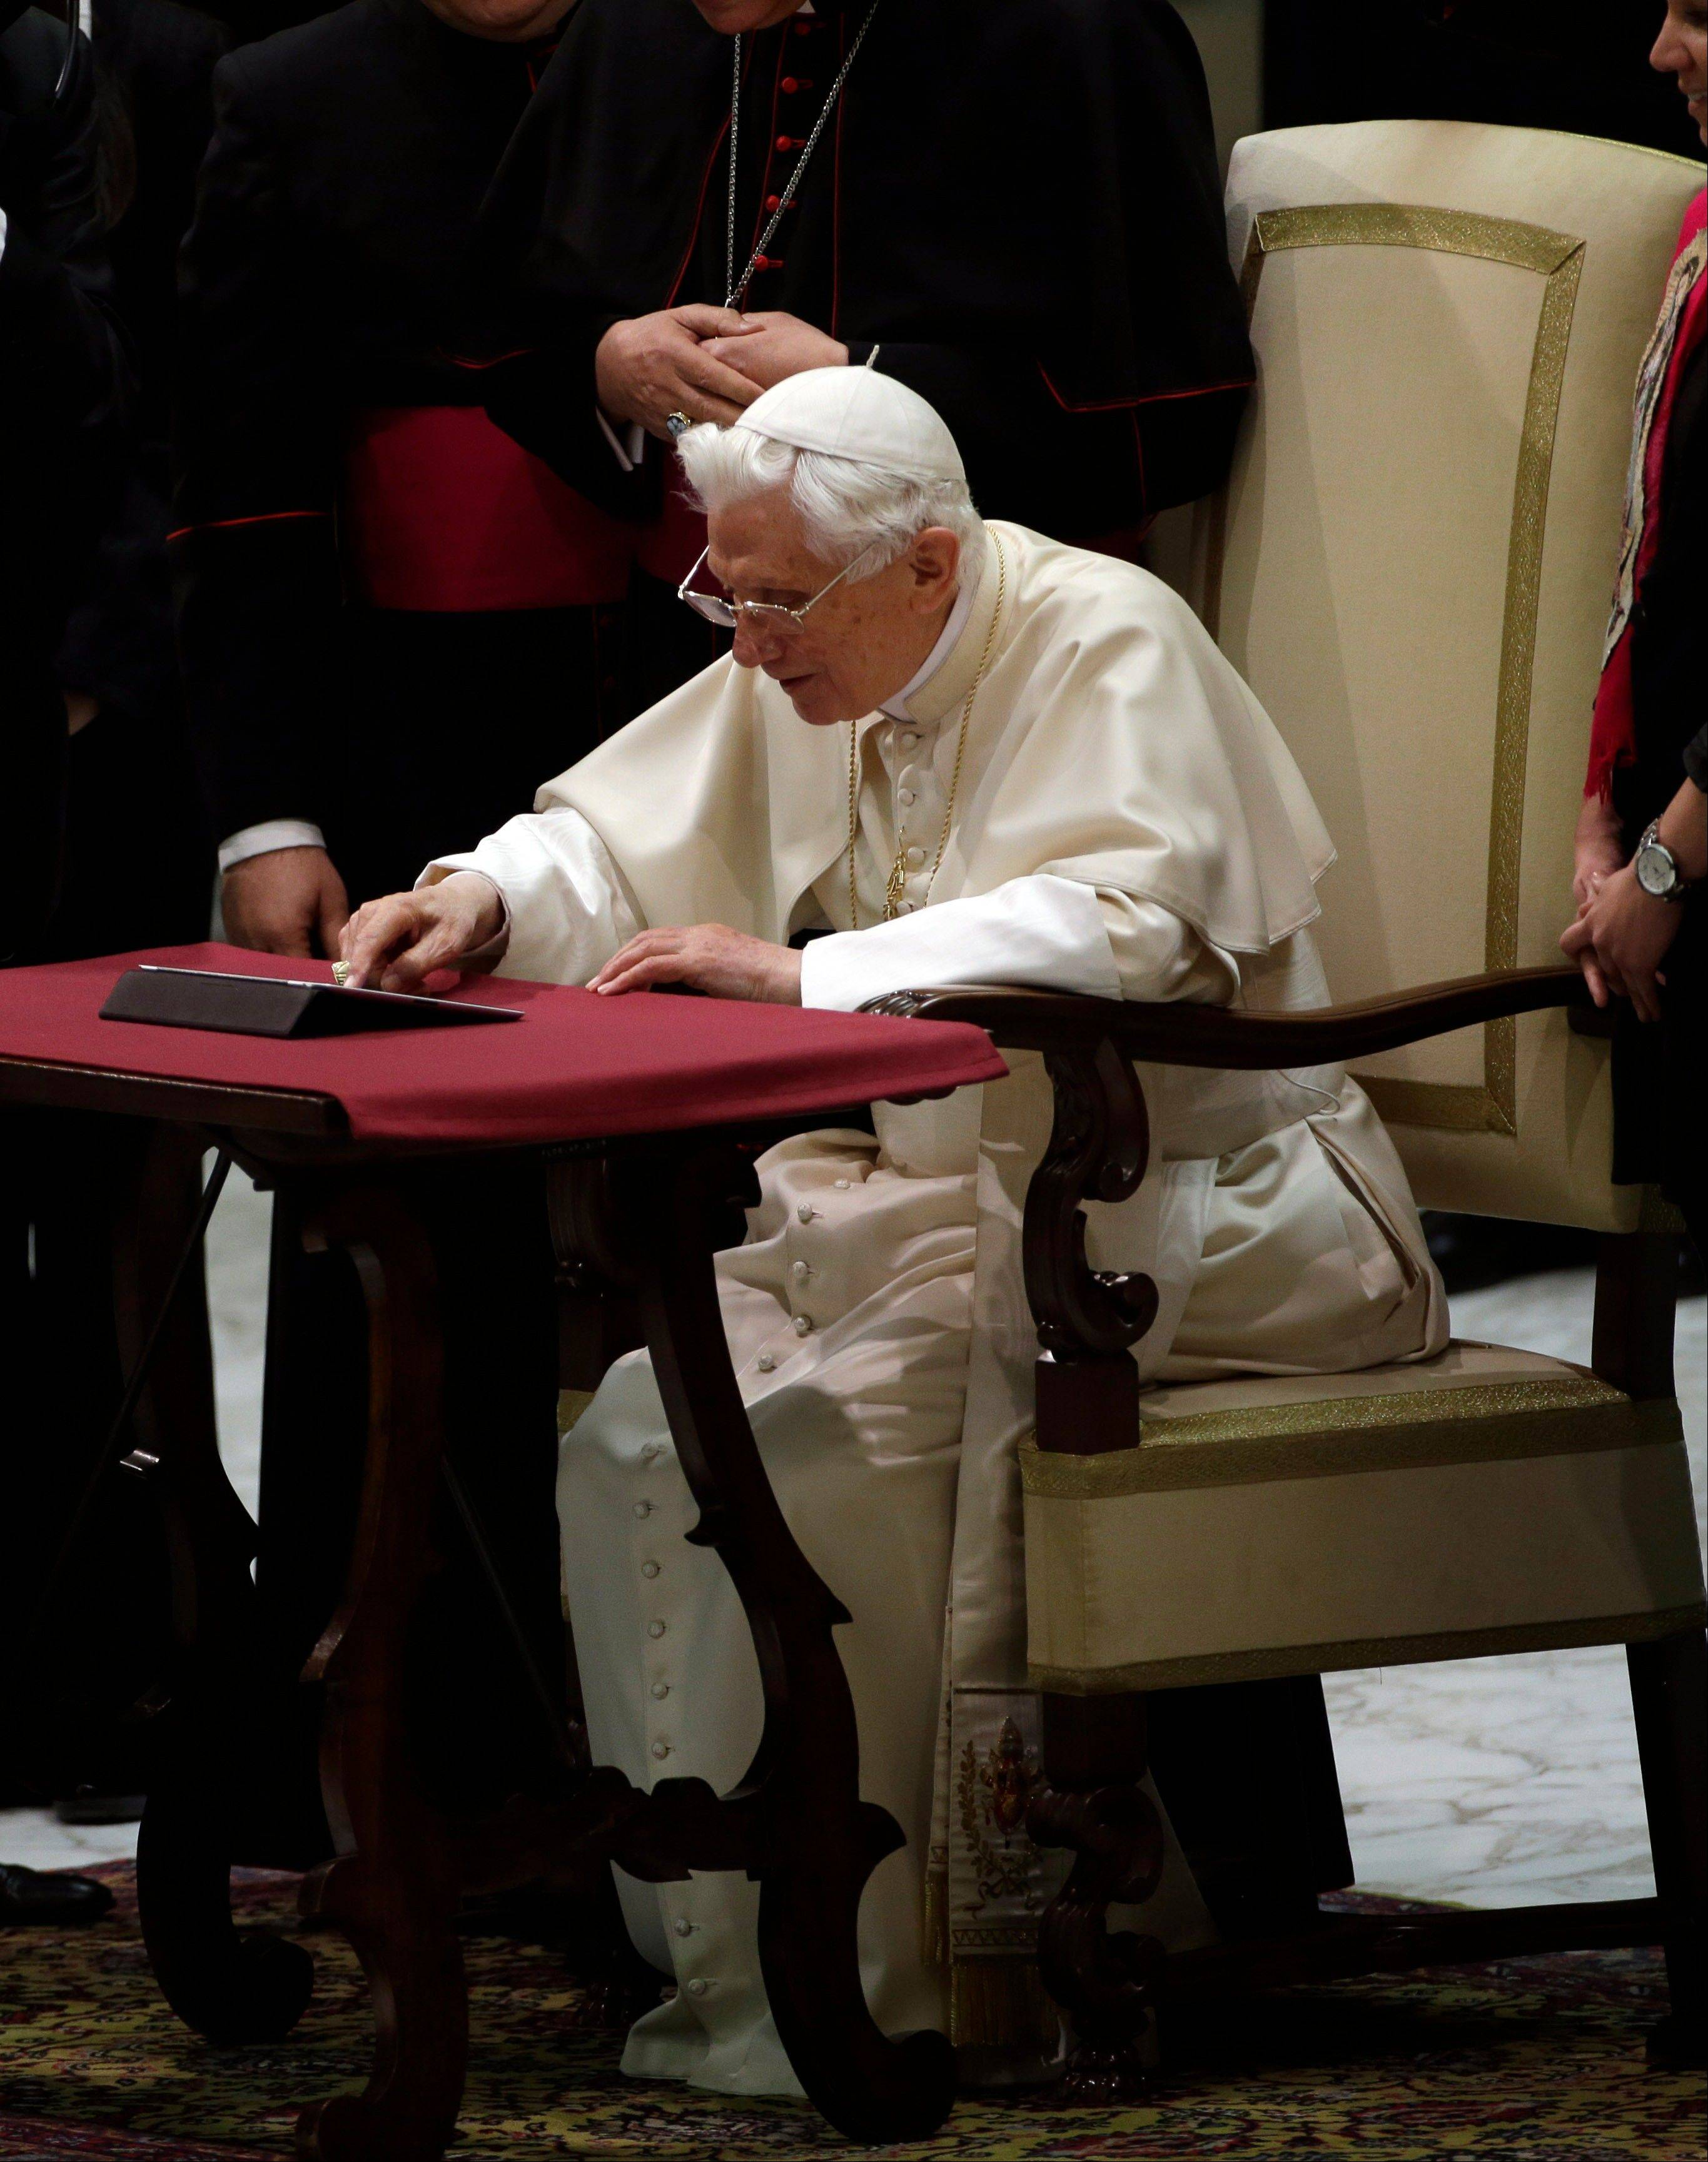 Pope Benedict XVI pushes a button on a tablet at the Vatican, Wednesday, Dec. 12, 2012. In perhaps the most drawn out Twitter launch ever, Pope Benedict XVI pushed the button on a tablet brought to him at the end of his general audience Wednesday.